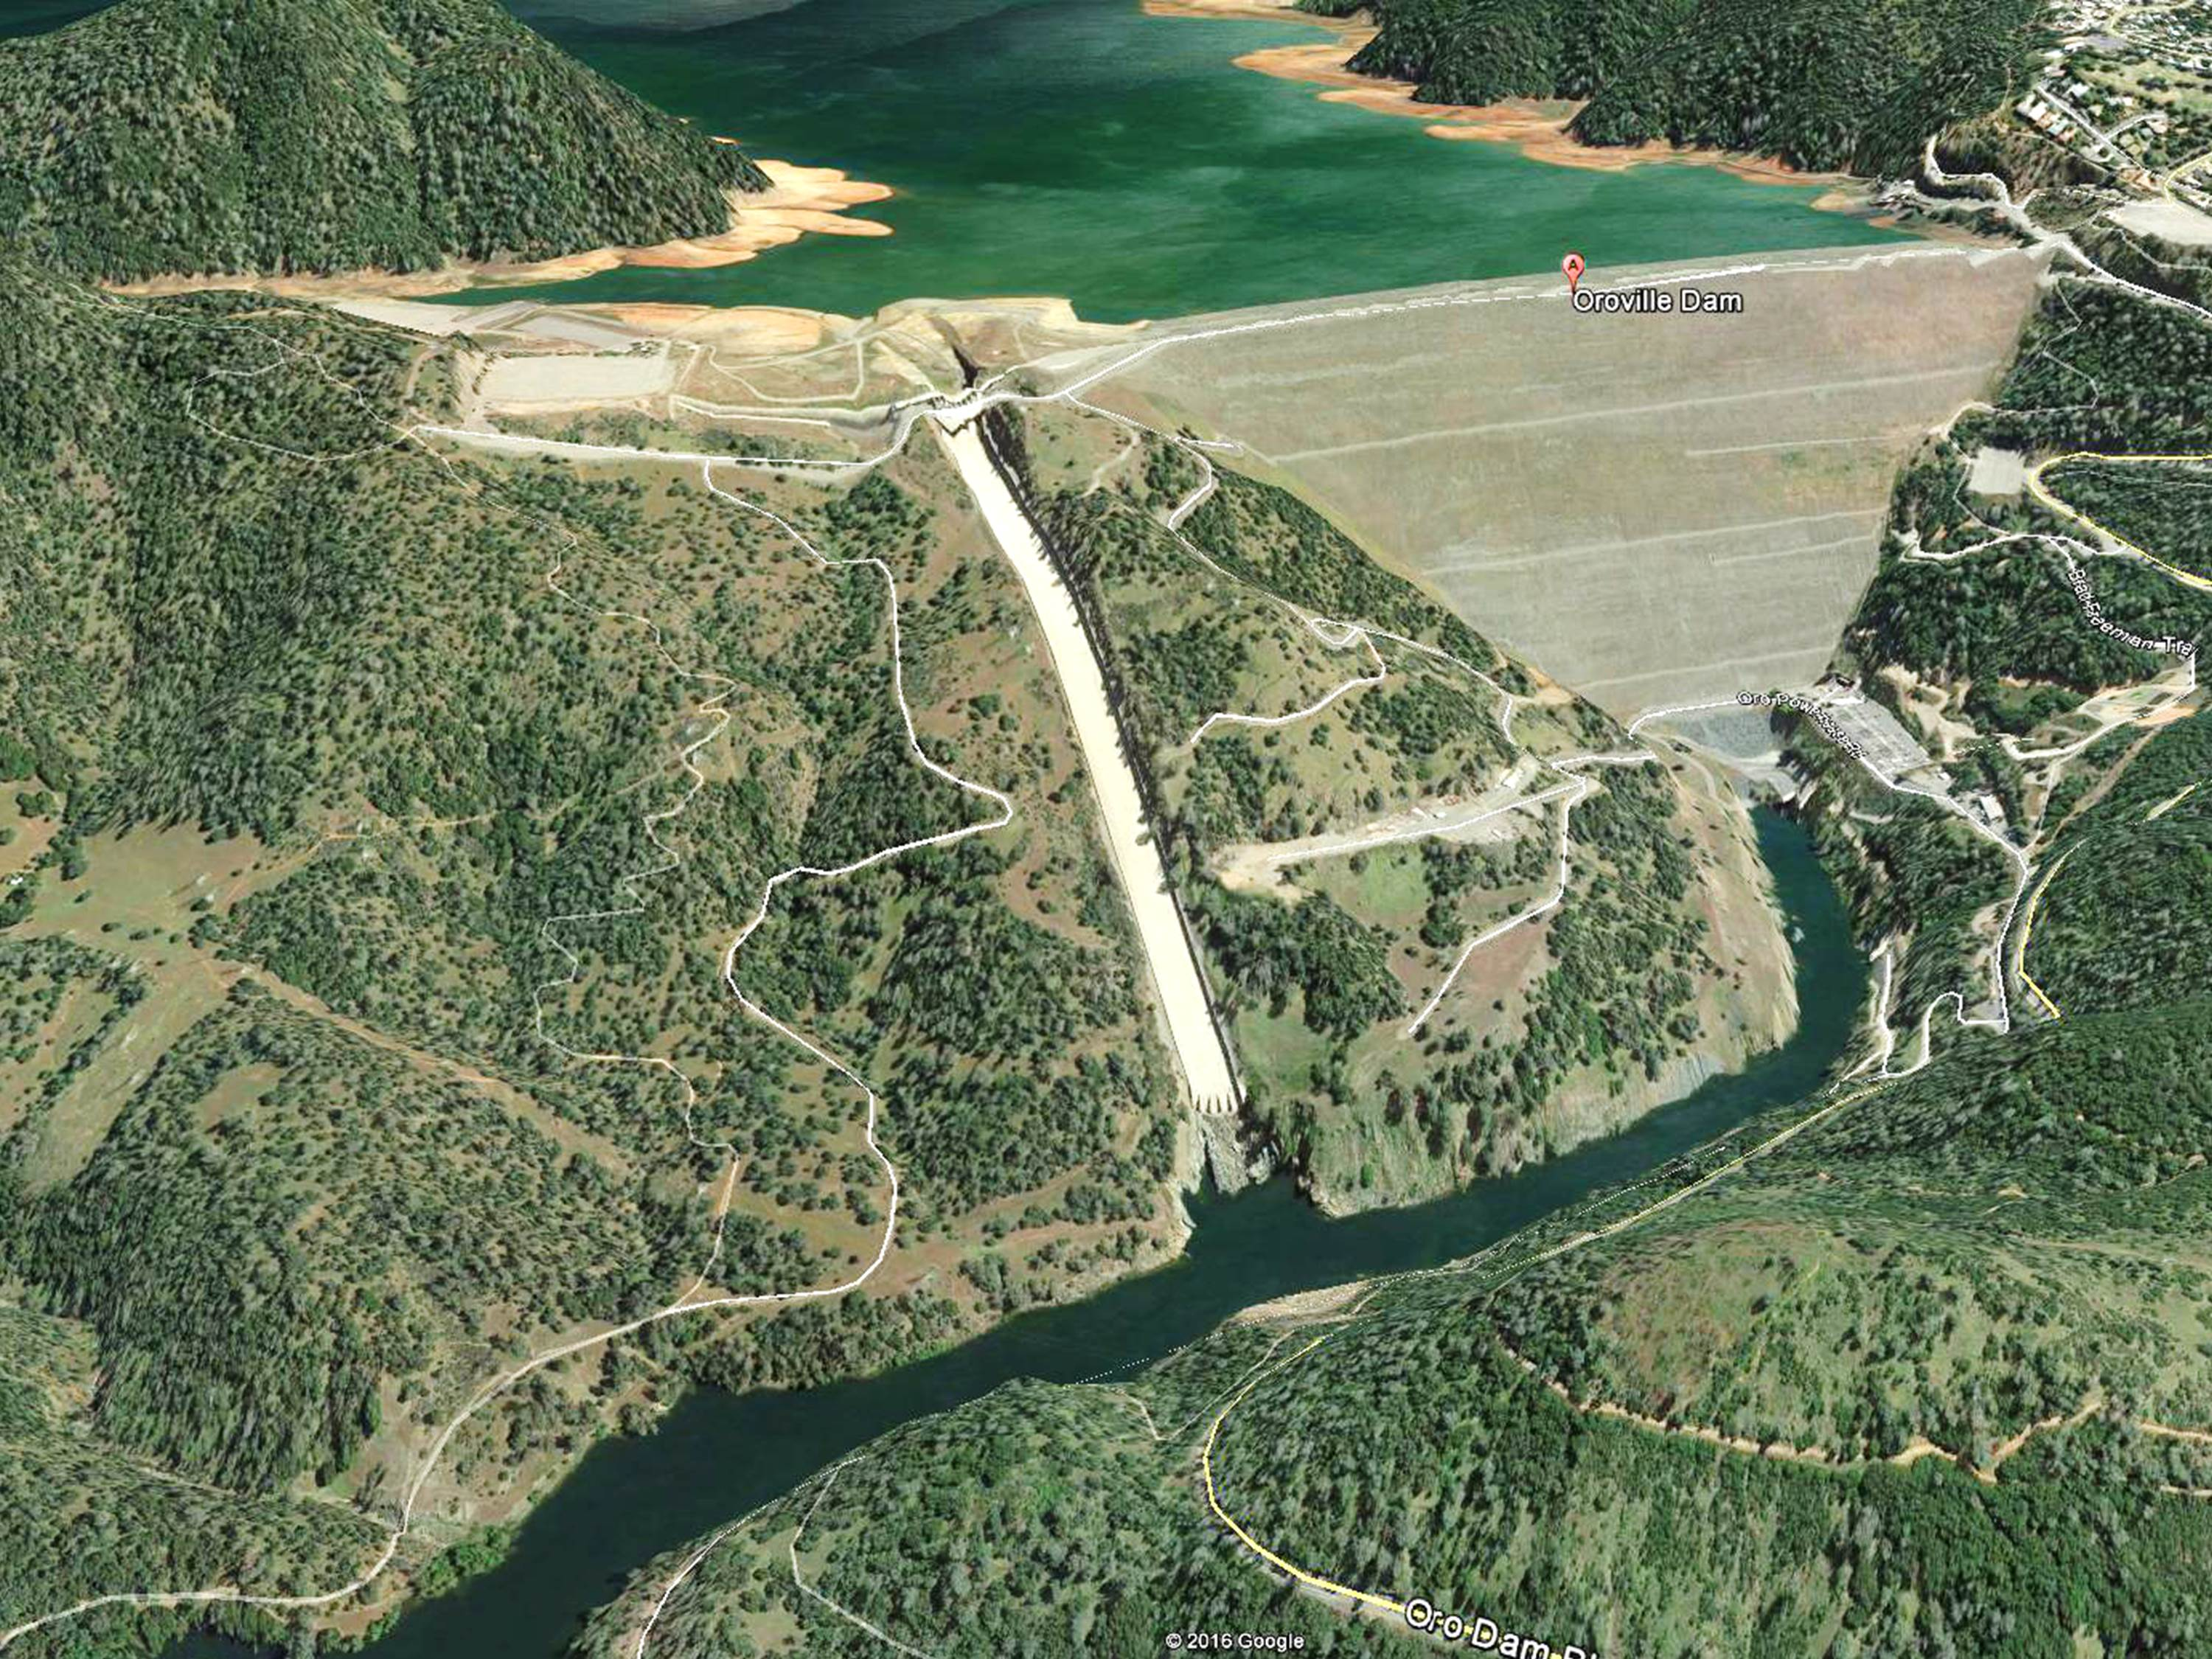 États-Unis: Le barrage de Lake Oroville menace de s'effondrer